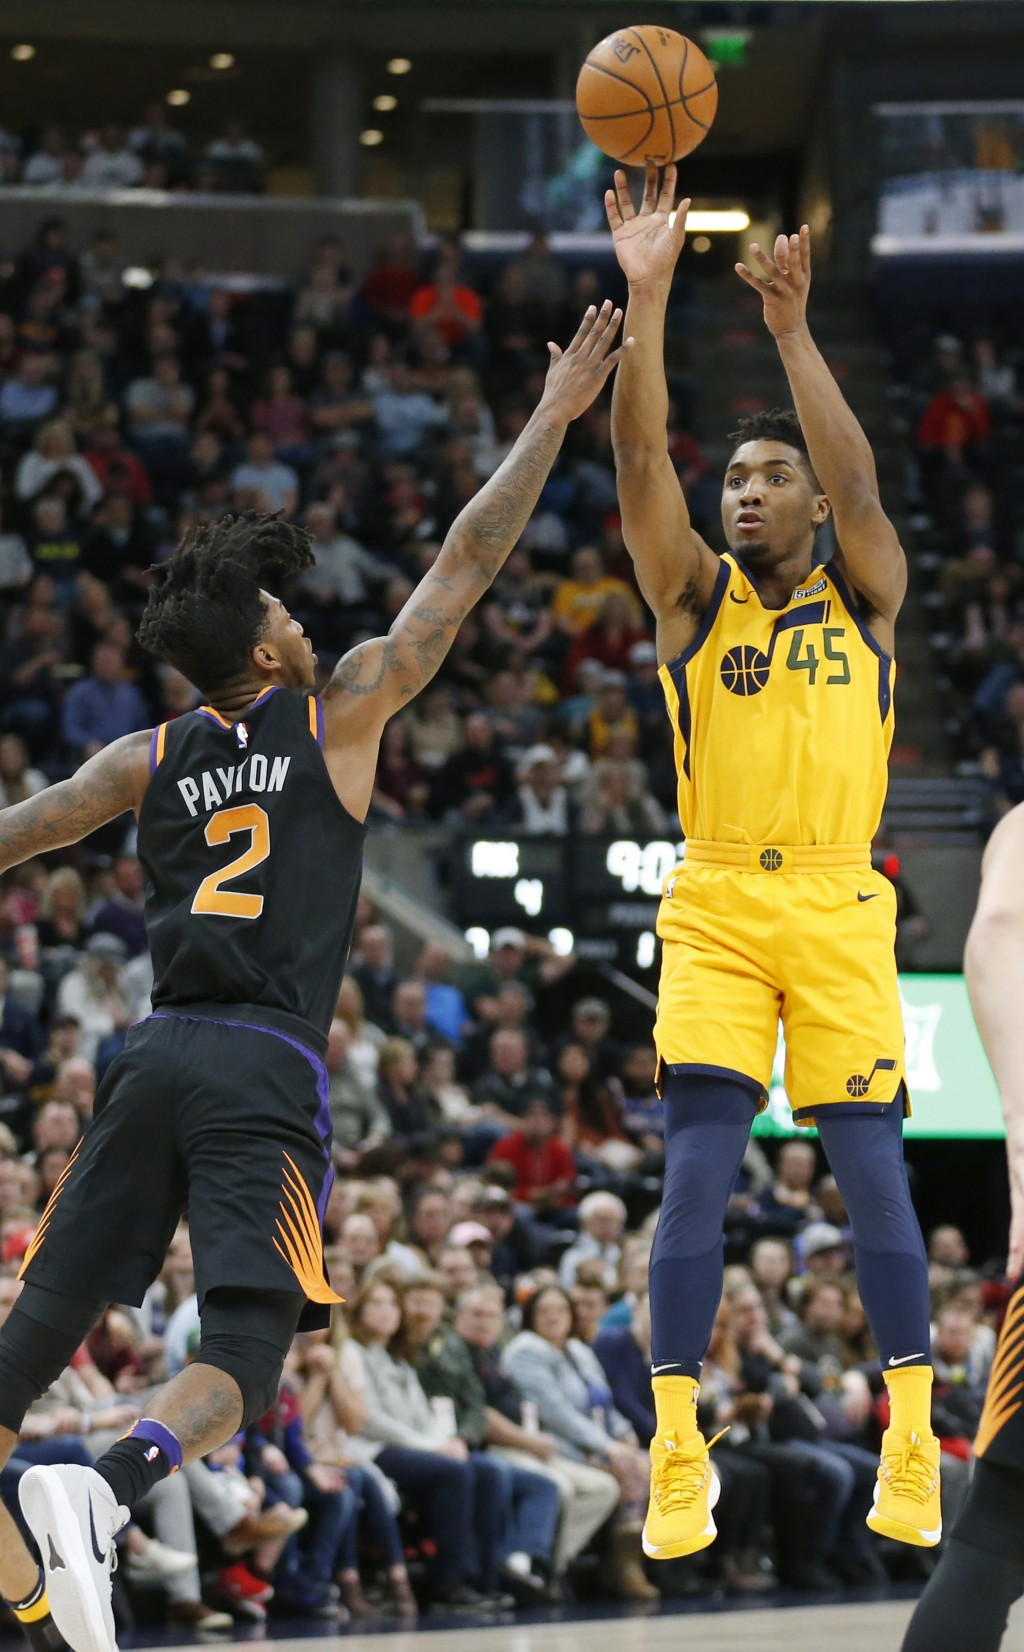 Utah Jazz guard Donovan Mitchell (45) shoots as Phoenix Suns guard Elfrid Payton (2) defends in the first half during an NBA basketball game Wednesday